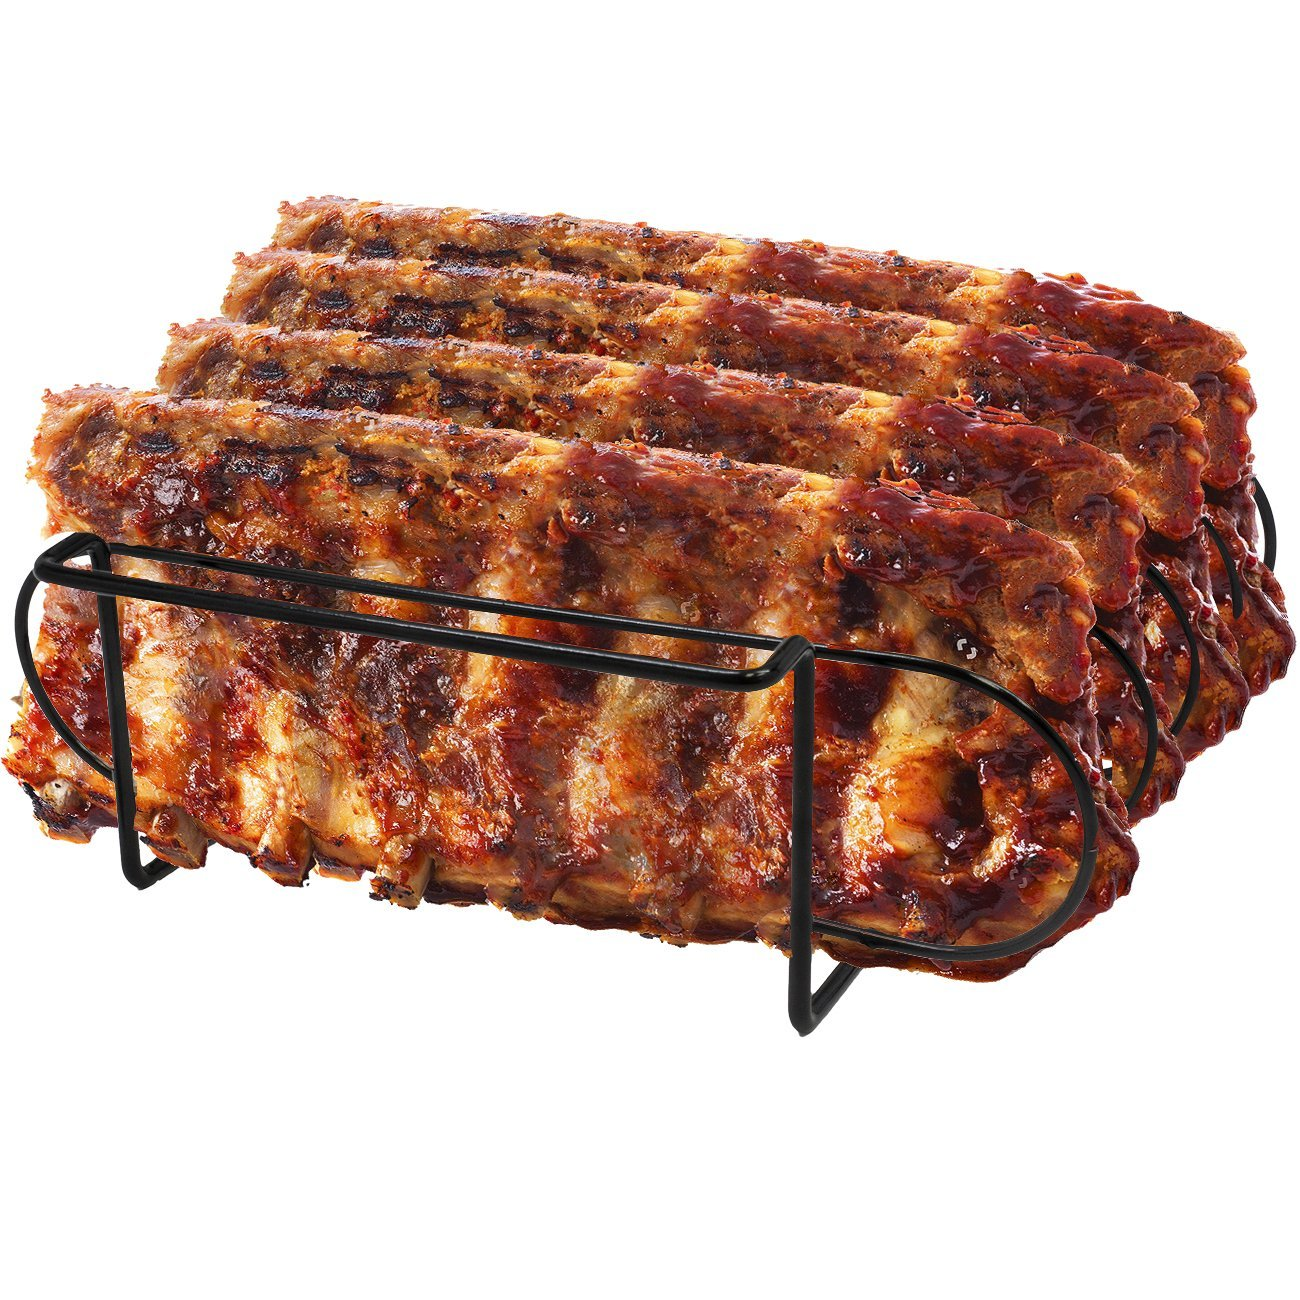 Sorbus Non-Stick Rib Rack - Porcelain Coated Steel Roasting Stand - Holds 4 Rib Racks for Grilling & Barbecuing (Black) by Sorbus